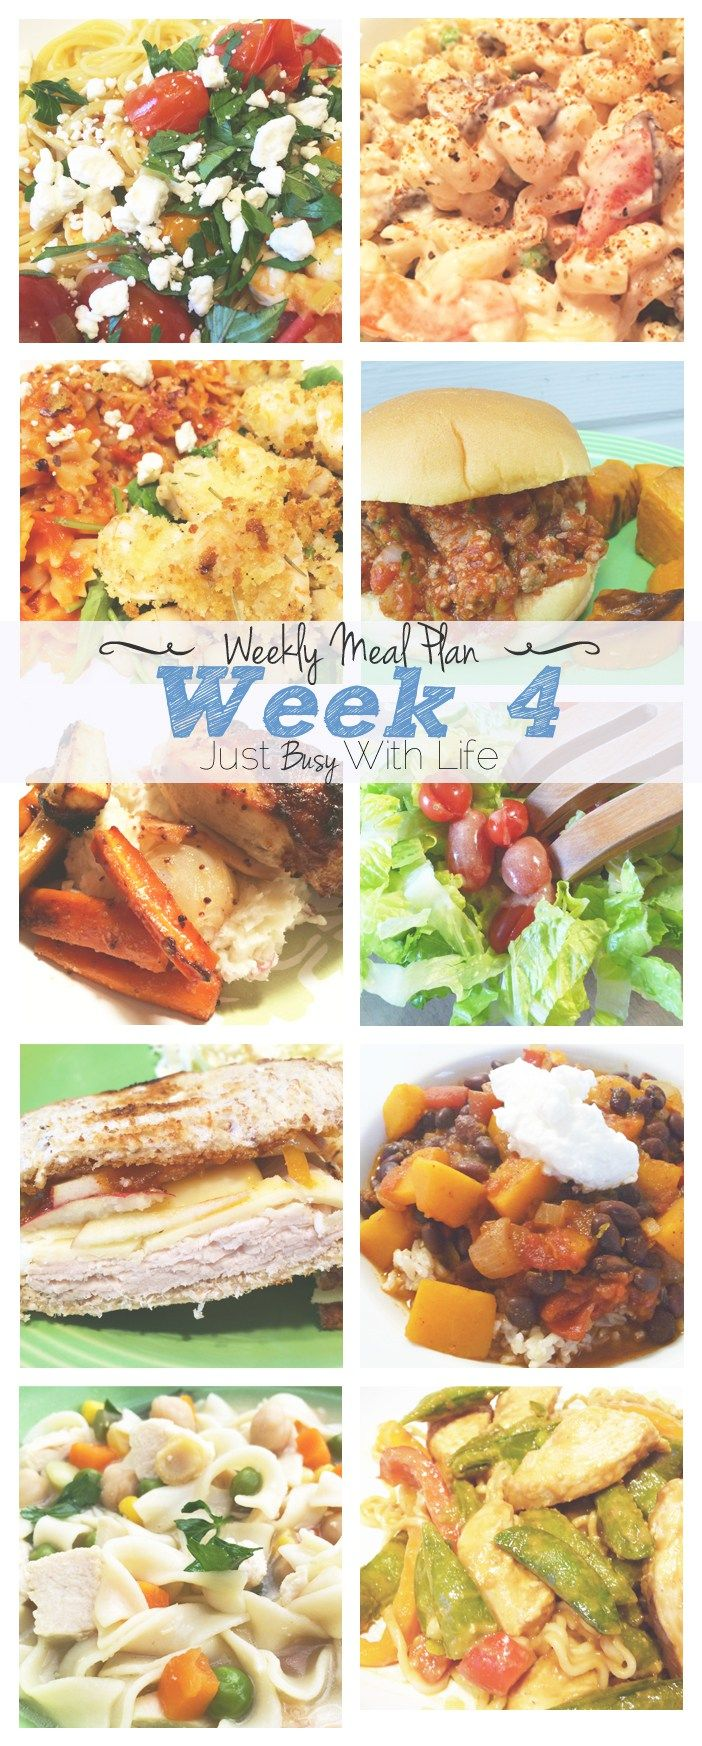 Weekly Meal Plan - Week 4